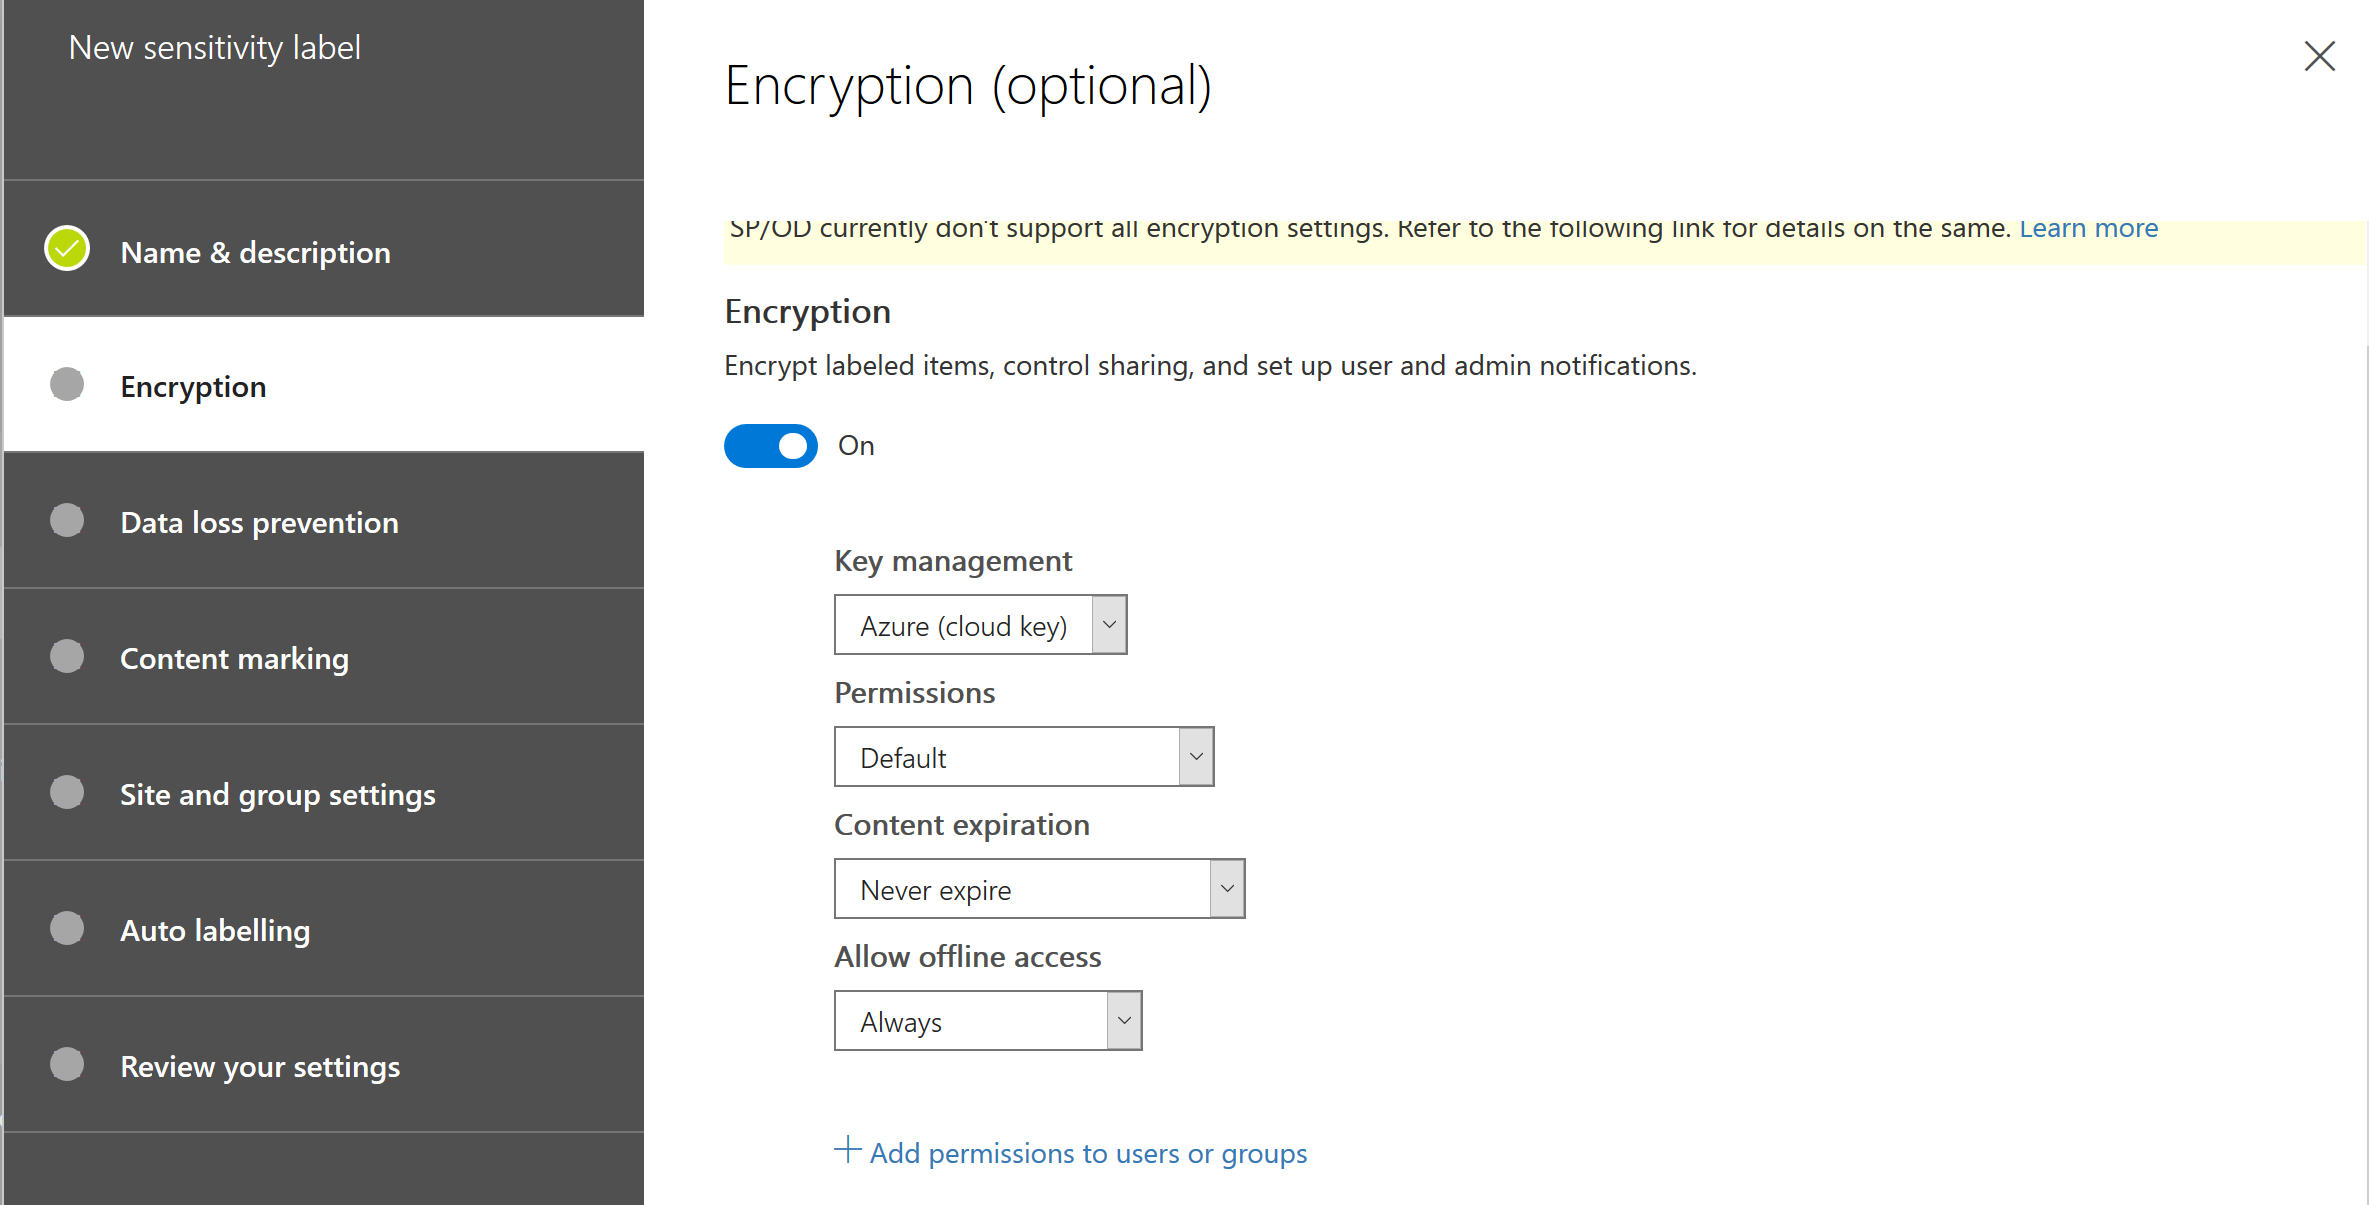 microsoft-information-protection-sensitivity-labels-page-2